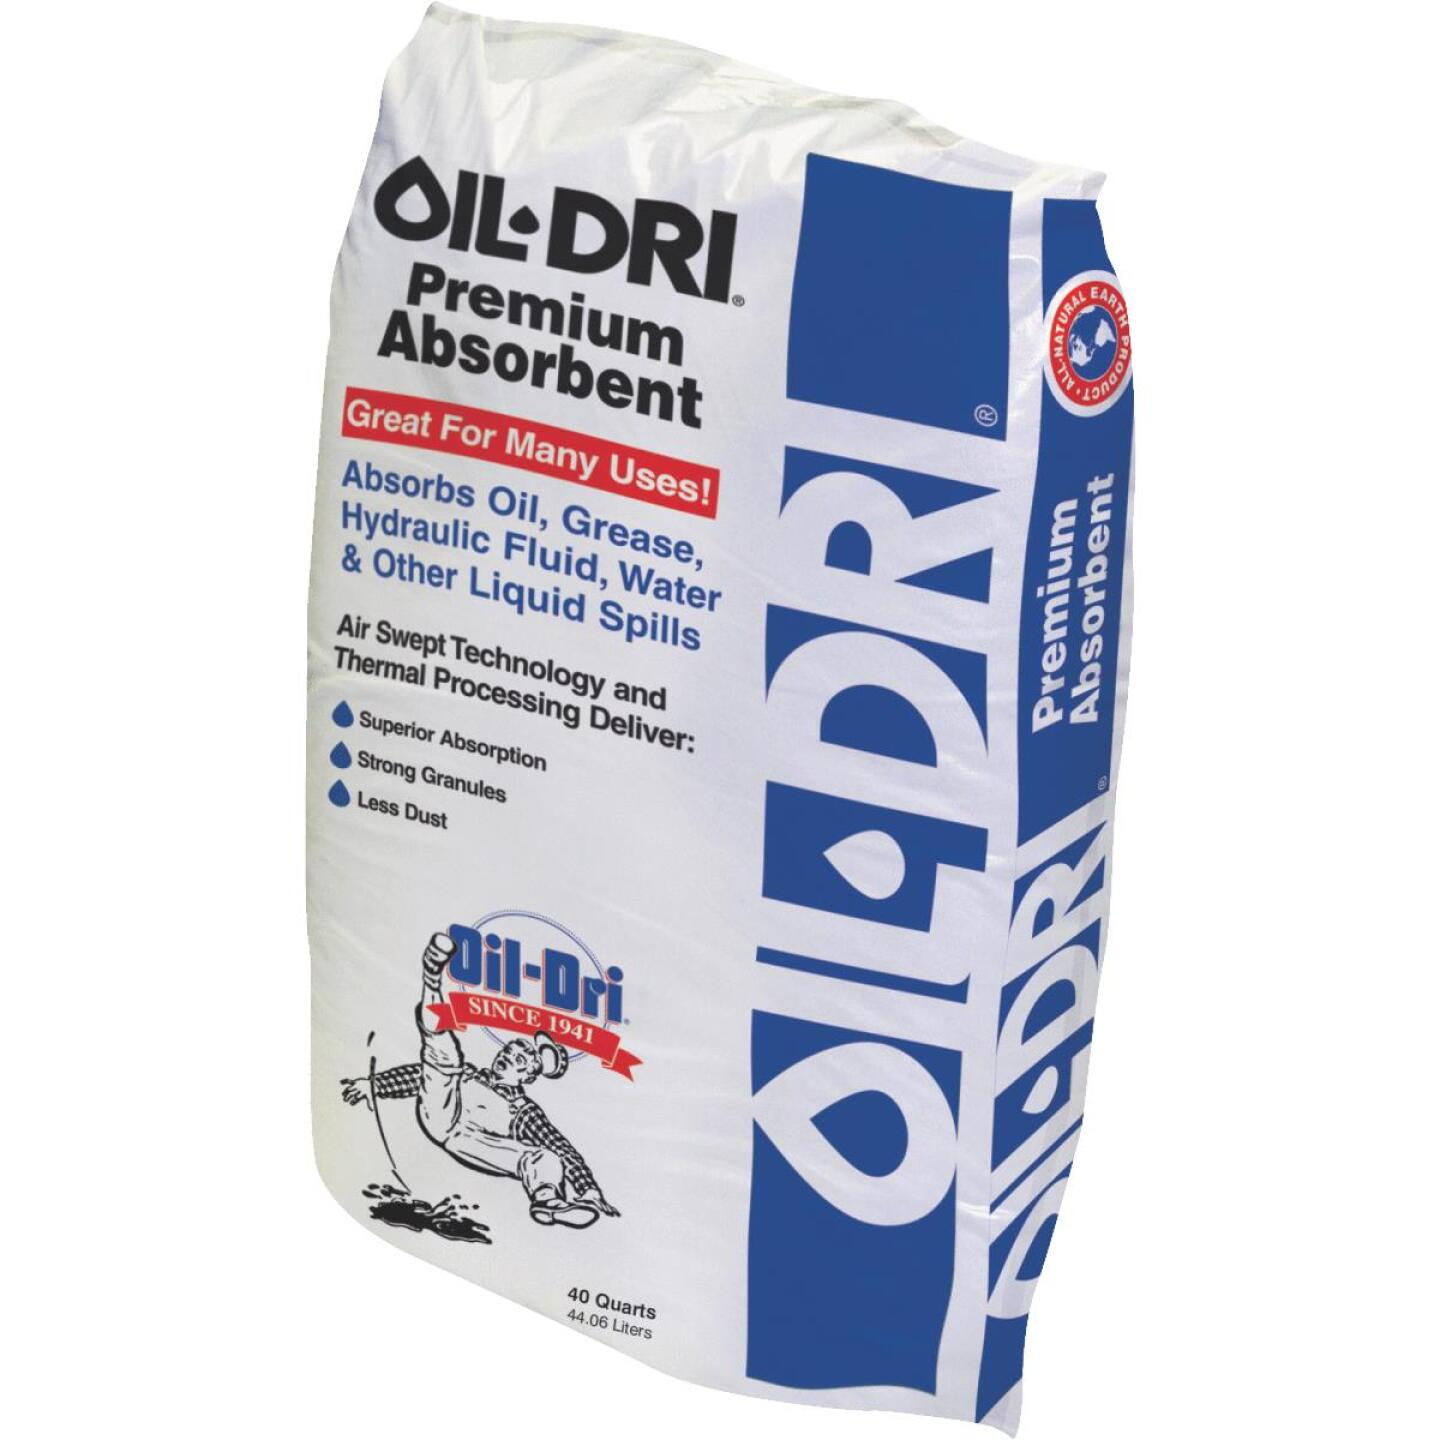 Oil Dri 40 Qt. Industrial Oil Absorbent Image 1